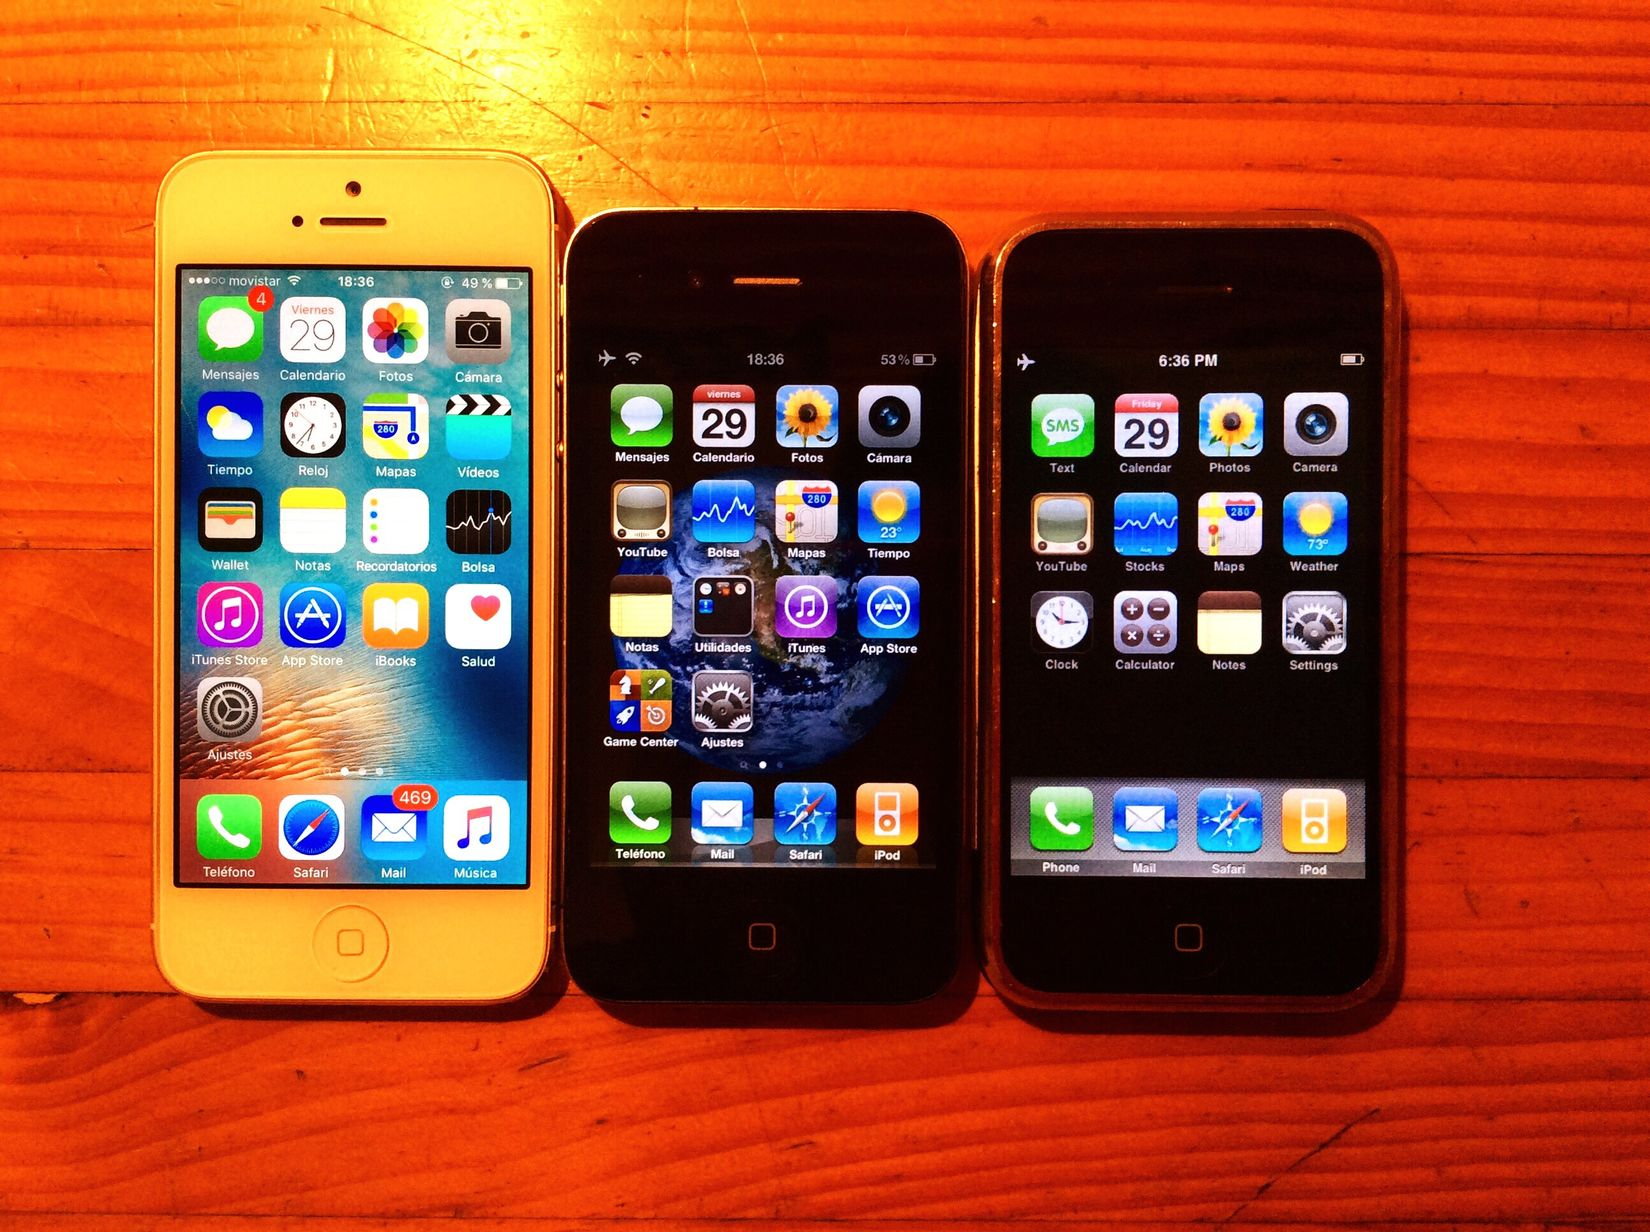 I guess you can say I'm an Apple fan 😎 Apple Vintage Iphone2g